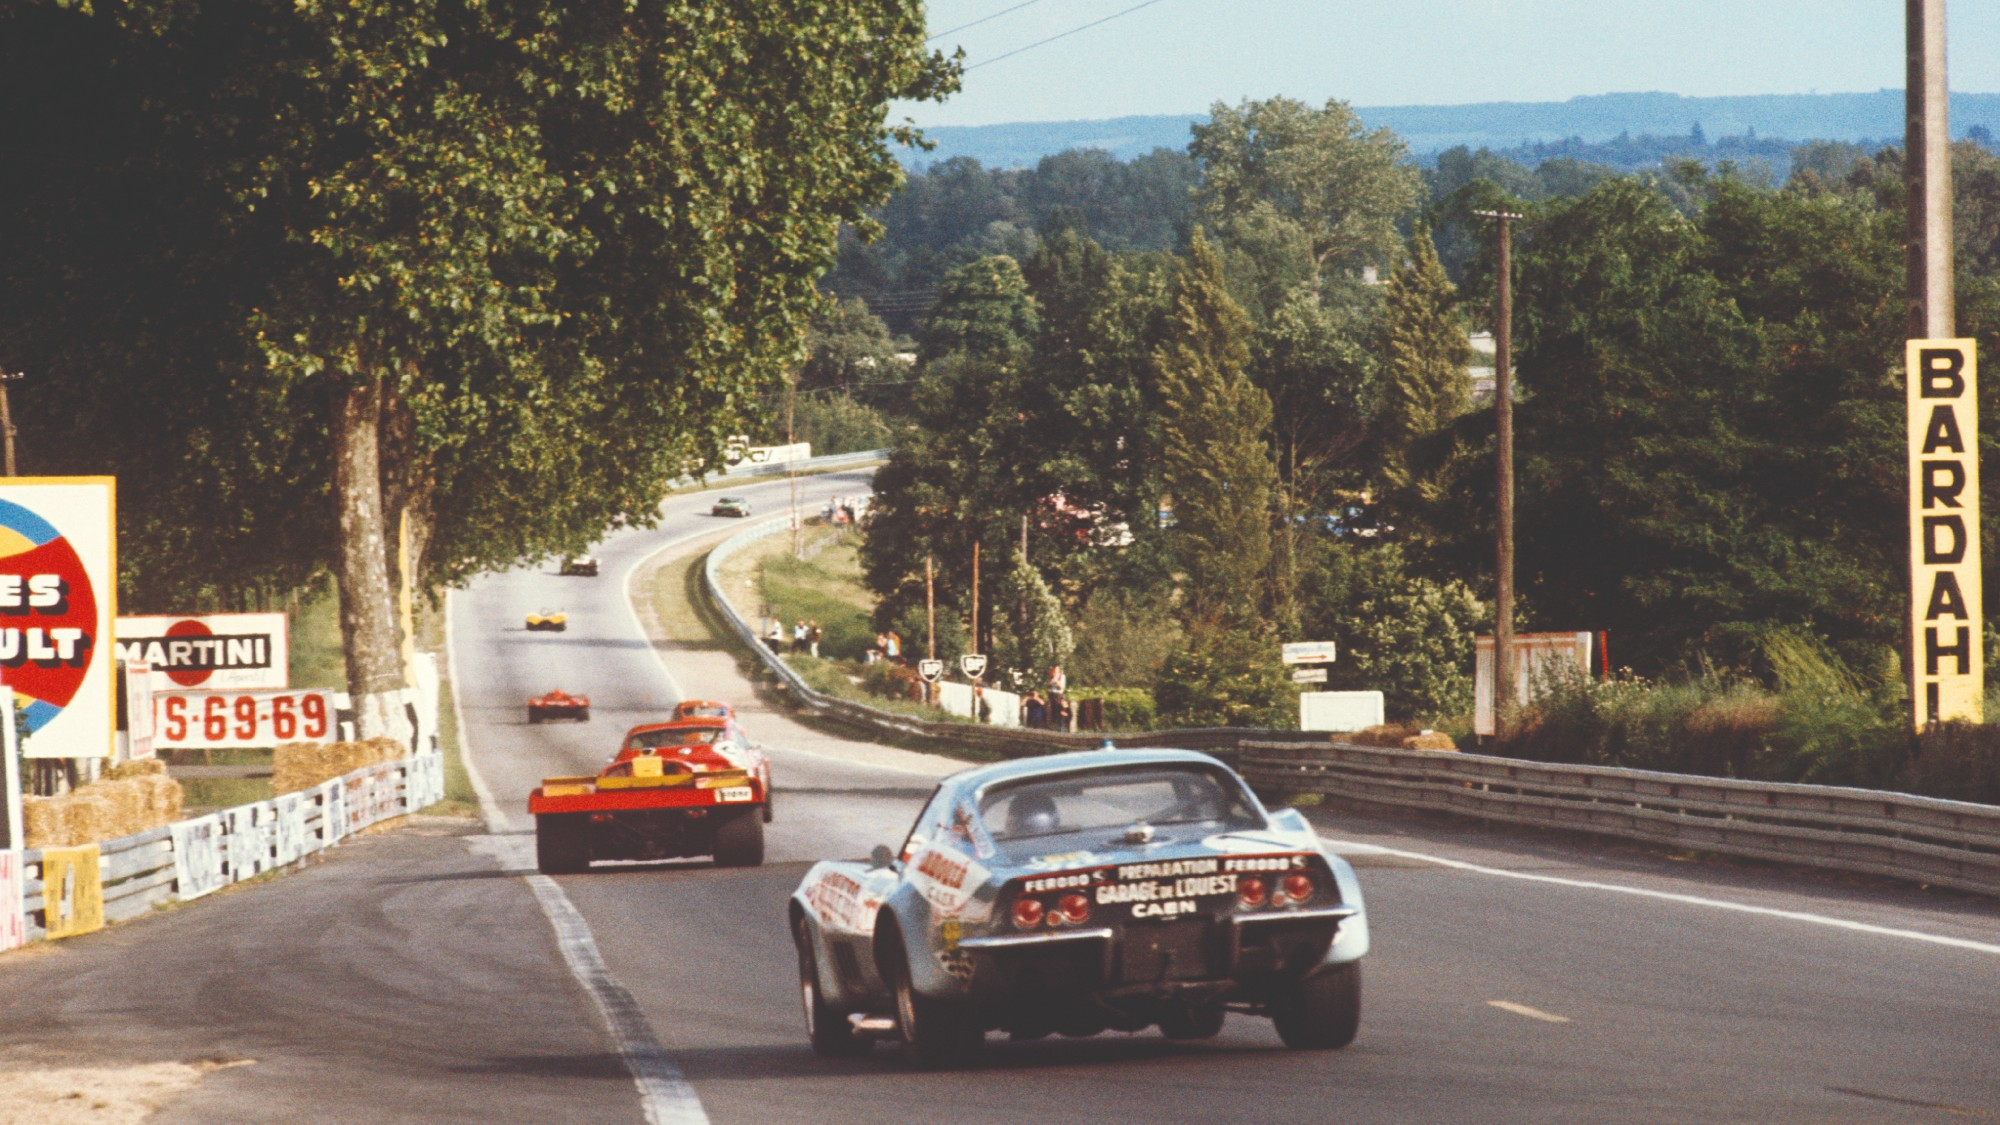 A Chevrolet Corvette follows a Ferarri 512M out of Tertre Rouge and on to the Mulsanne Straight in the 1971 Le Mans 24 Hours race